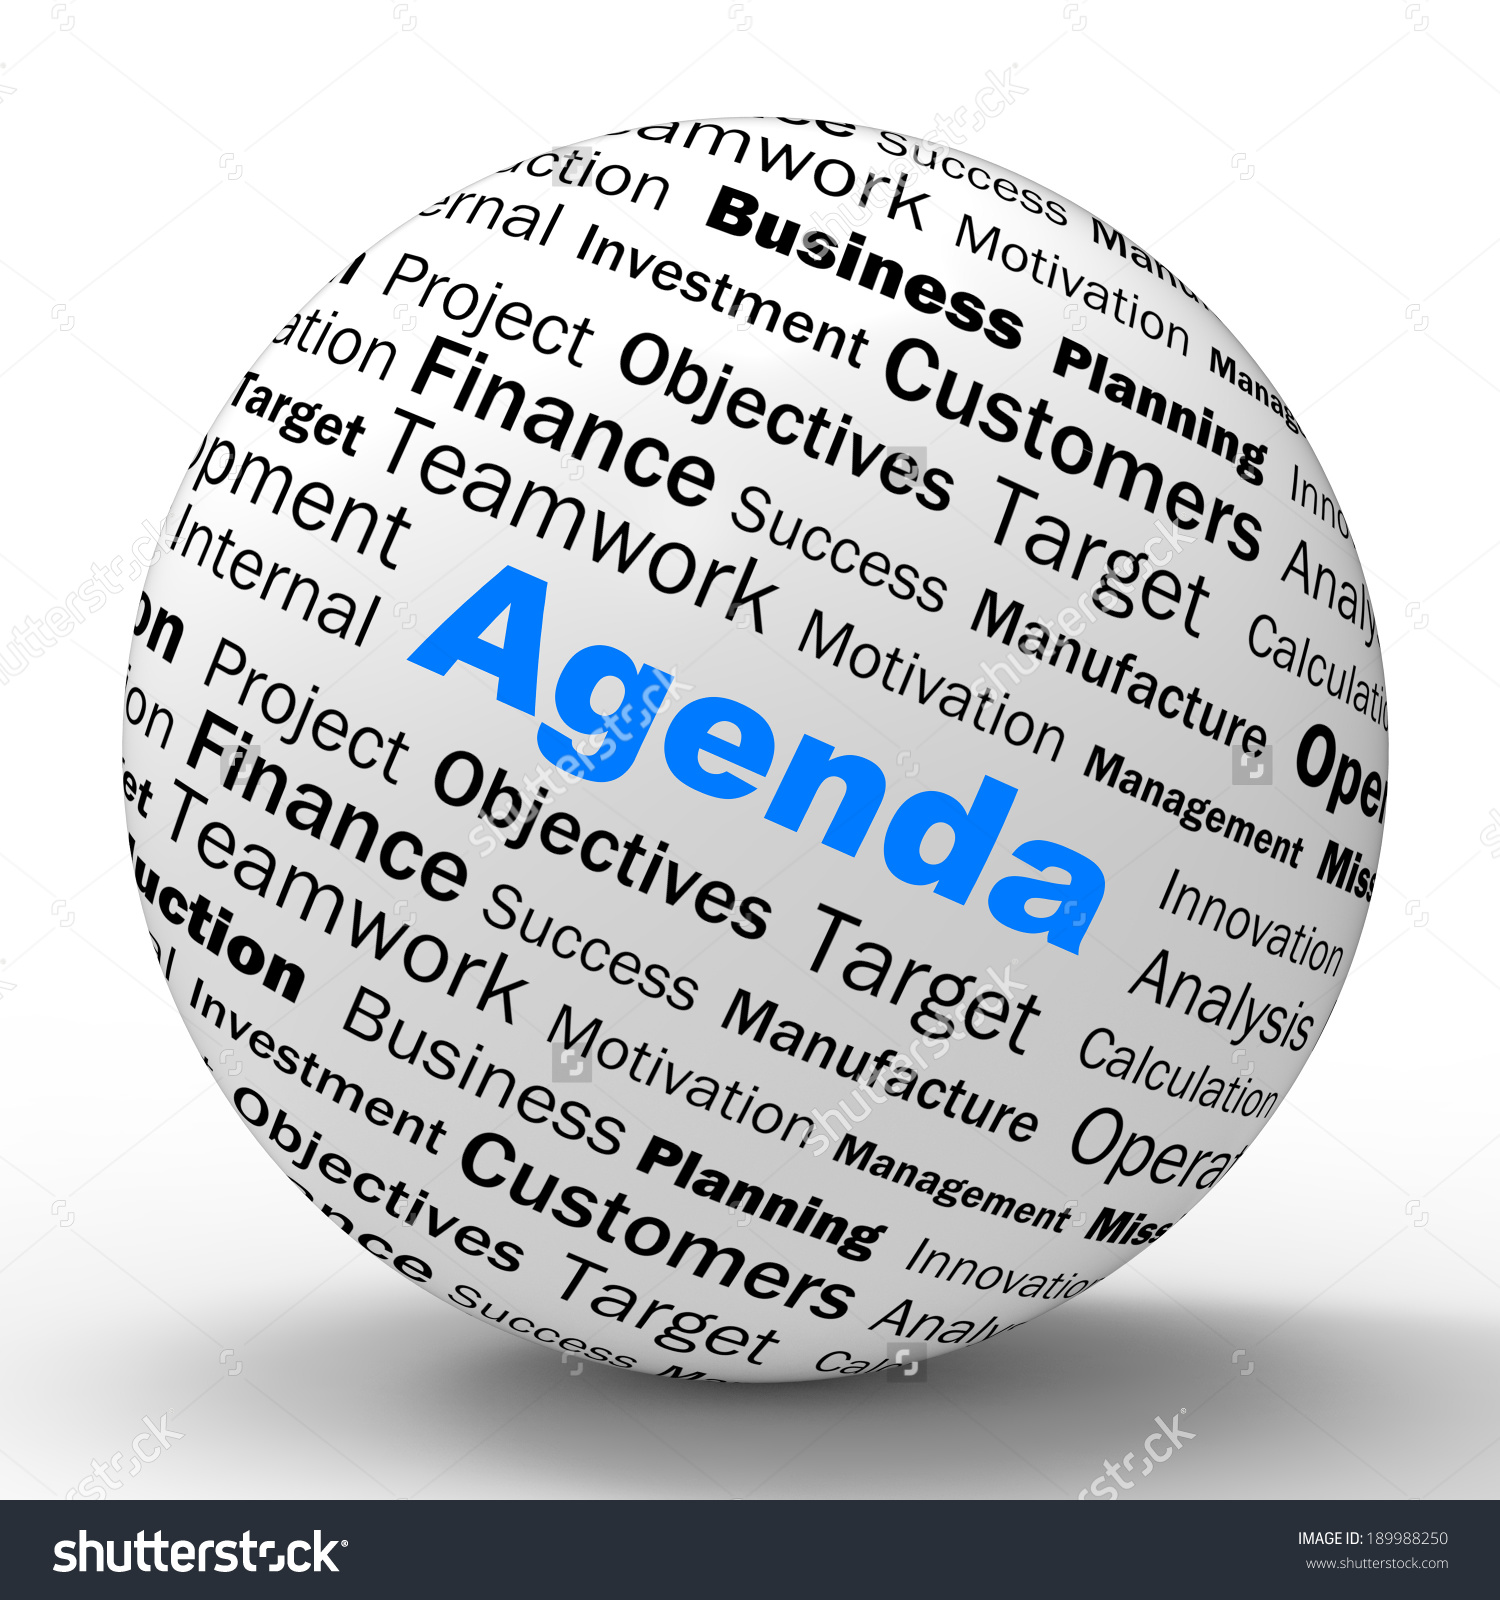 Agenda Sphere Definition Meaning Schedule Planner Stock.